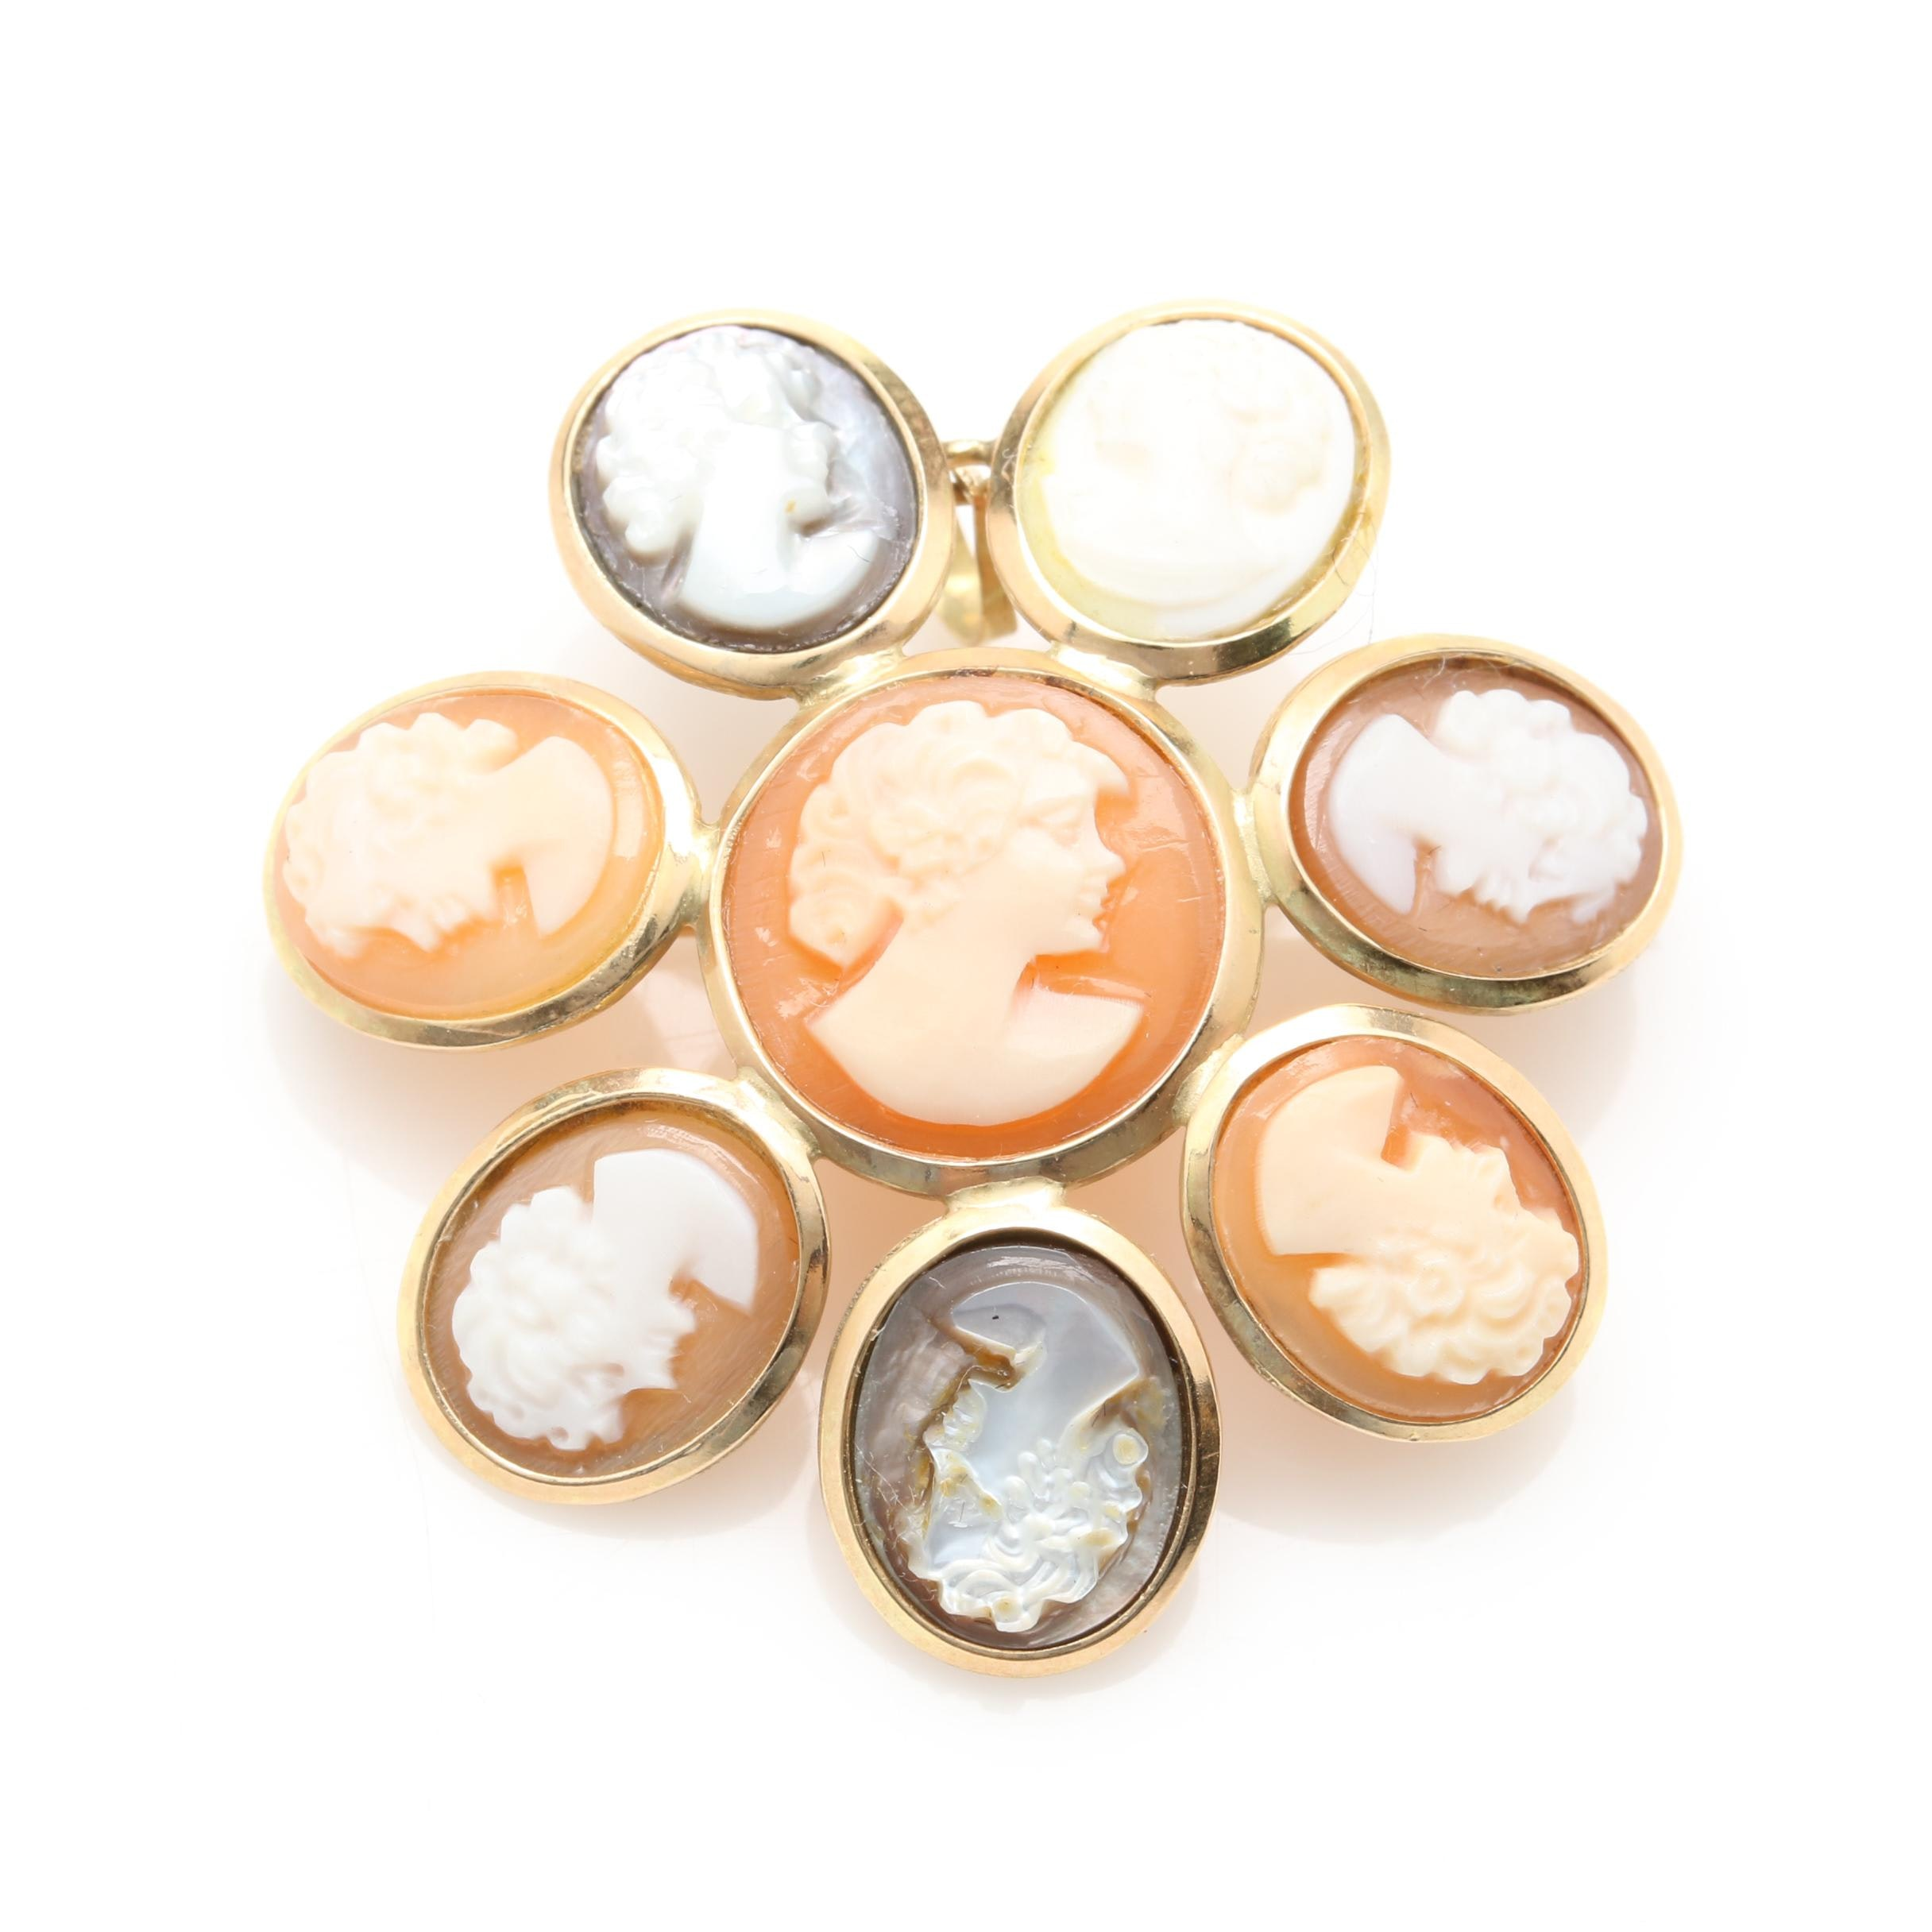 14K Yellow Gold Shell and Mother of Pearl Cameo Converter Brooch